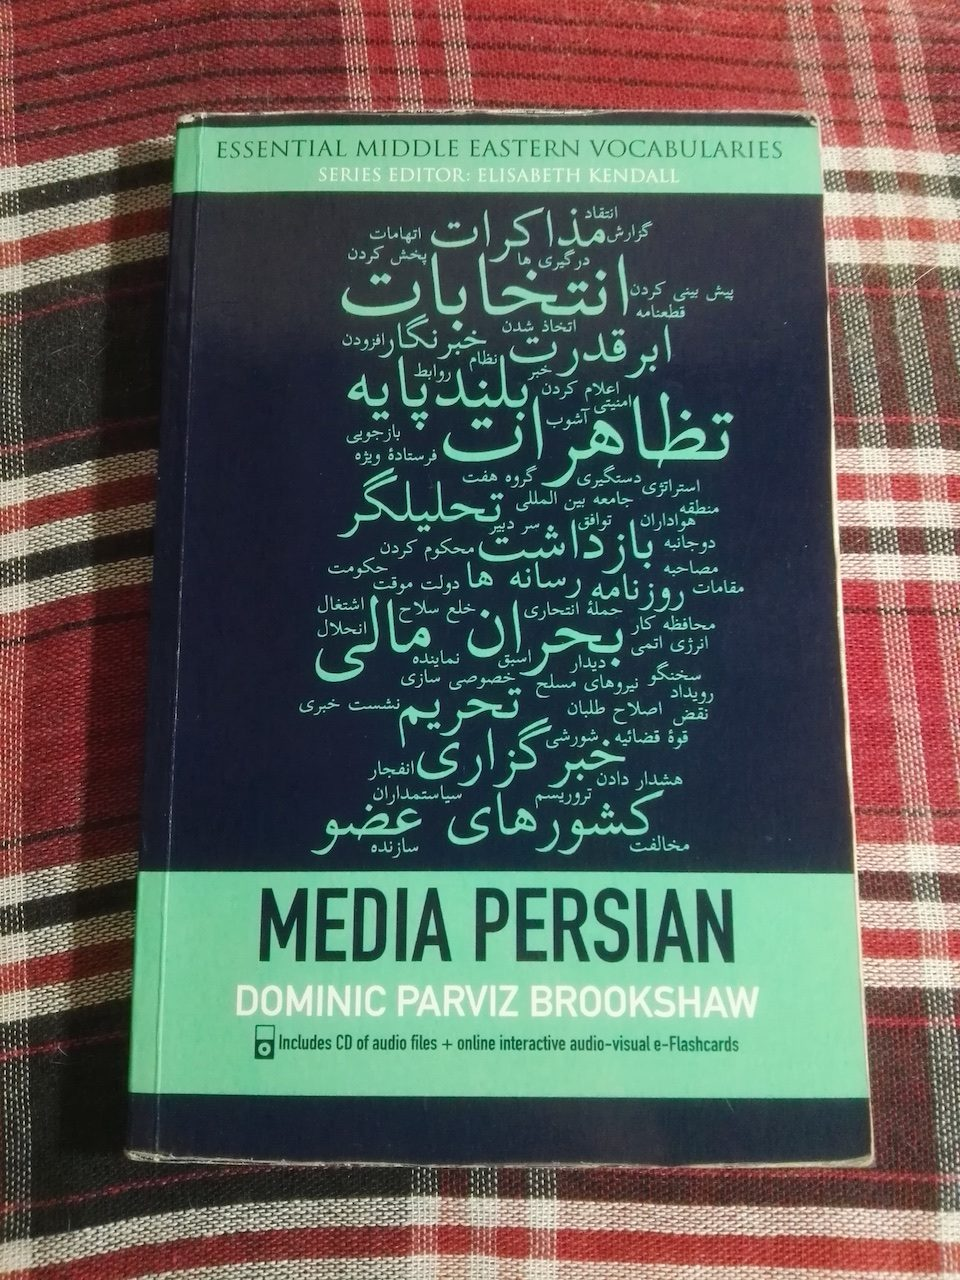 Dominic Parviz Brookshaw - Media Persian